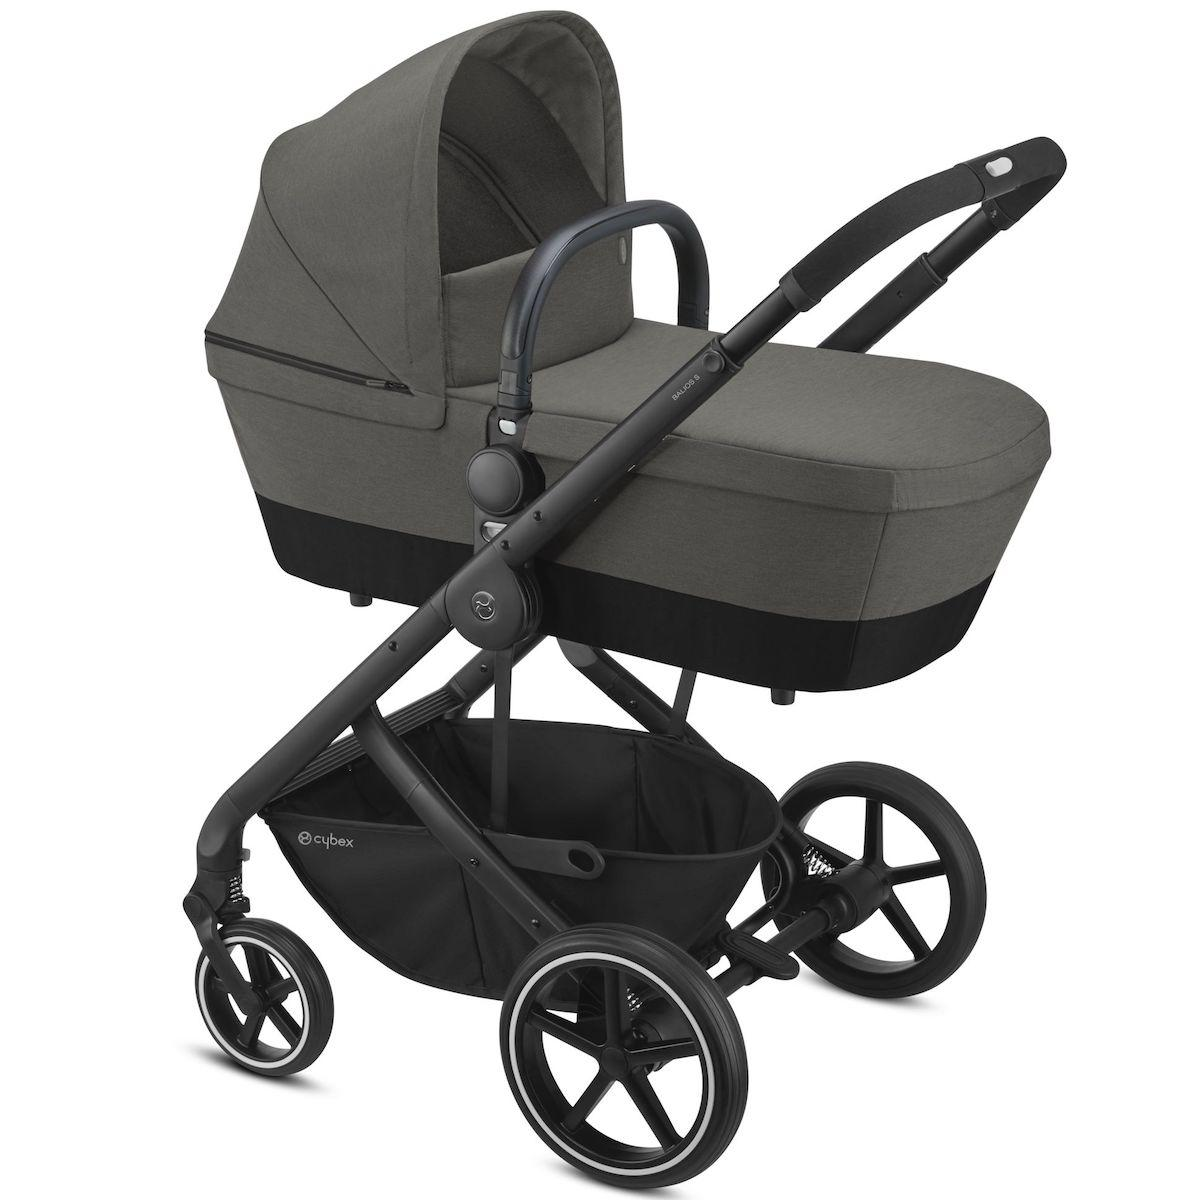 Poussette complète BALIOS S 2in1 BLK Cybex Soho grey-mid grey